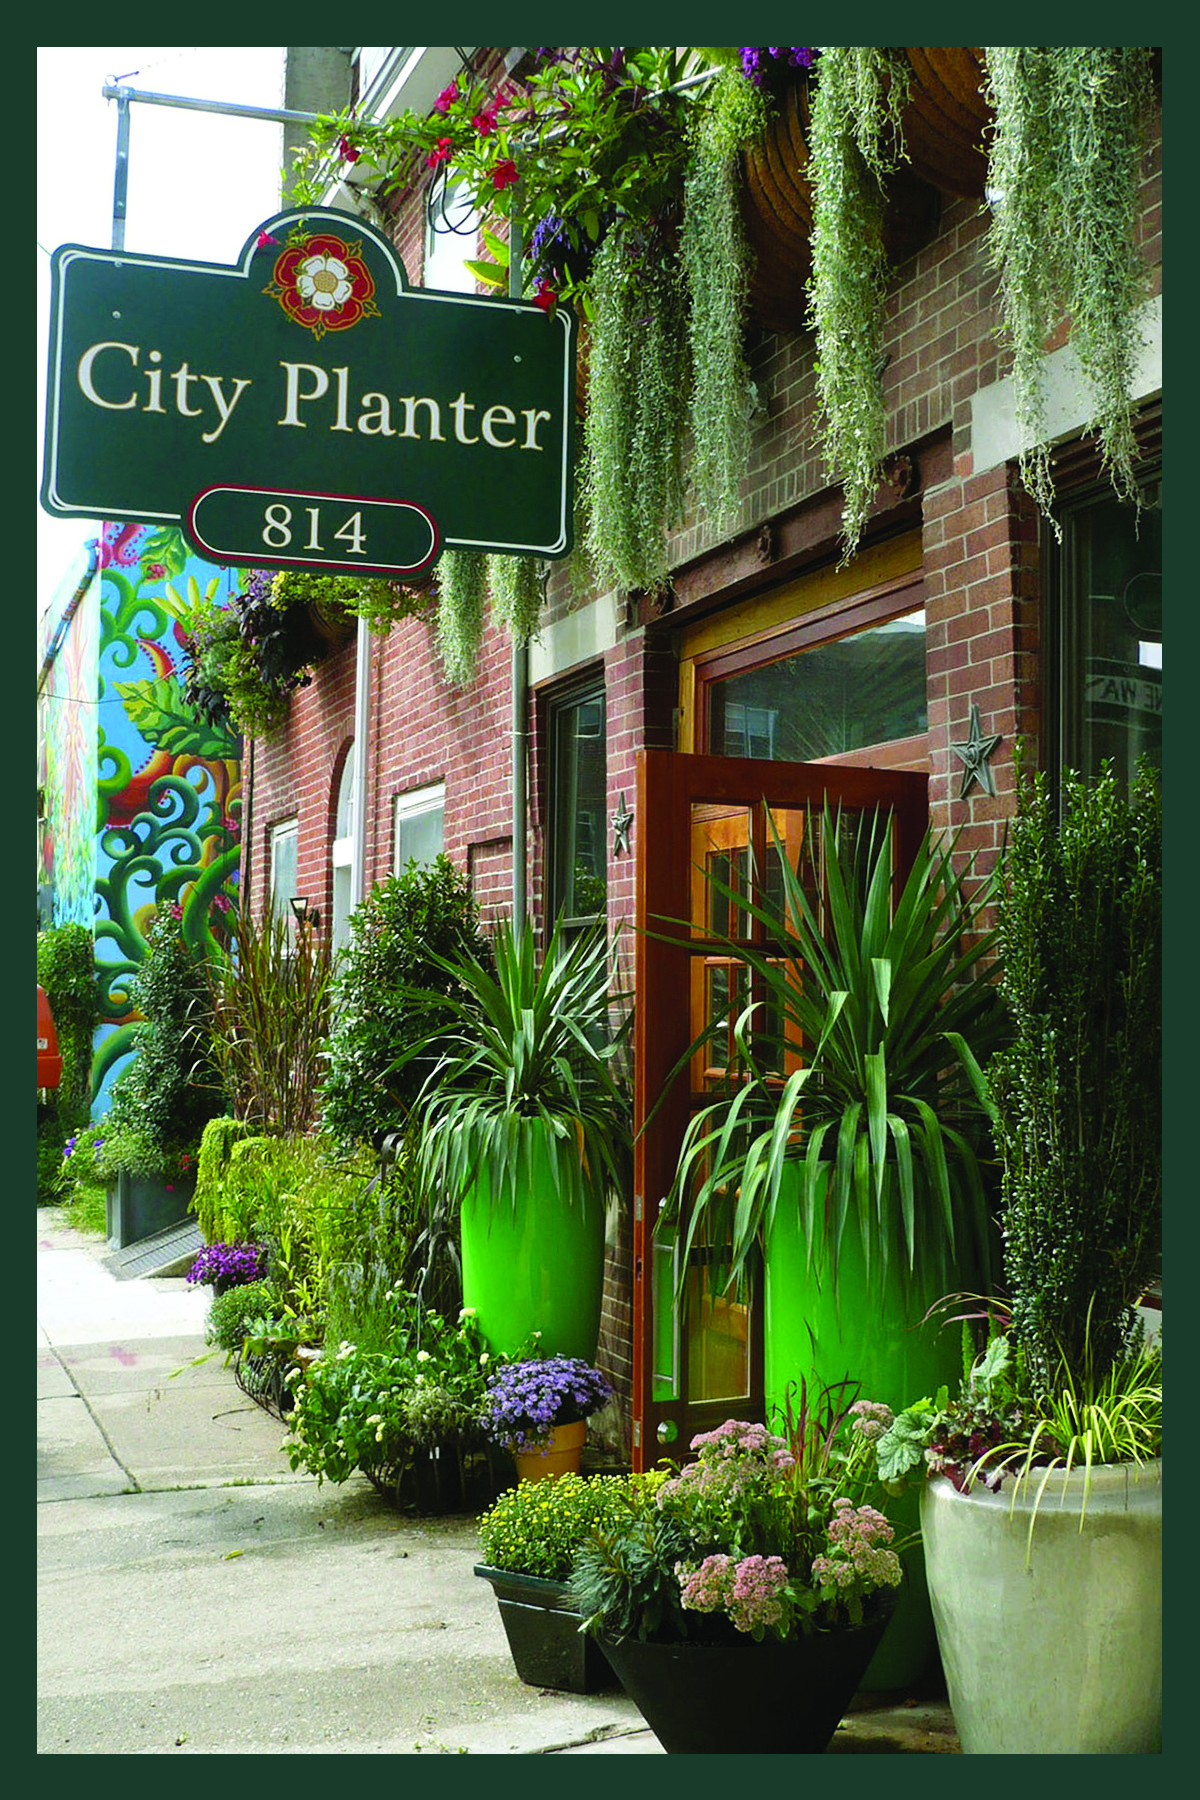 Special Order Catalog - Containers for all of your plants!